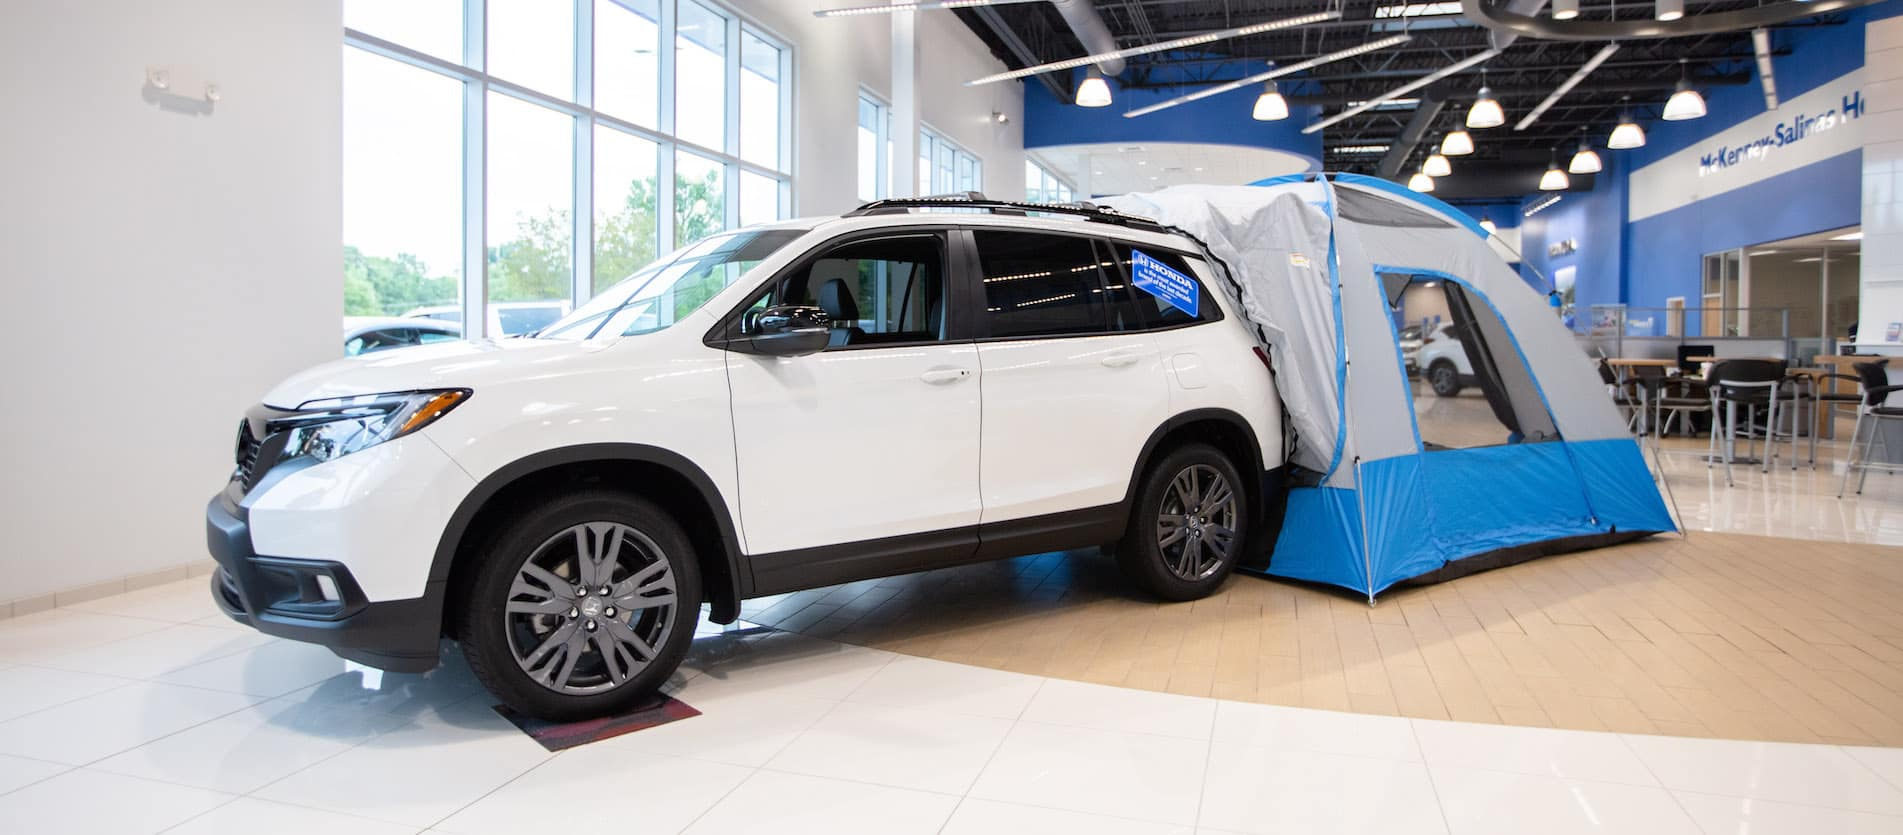 Honda SUV with tent off rear of vehicle inside showroom